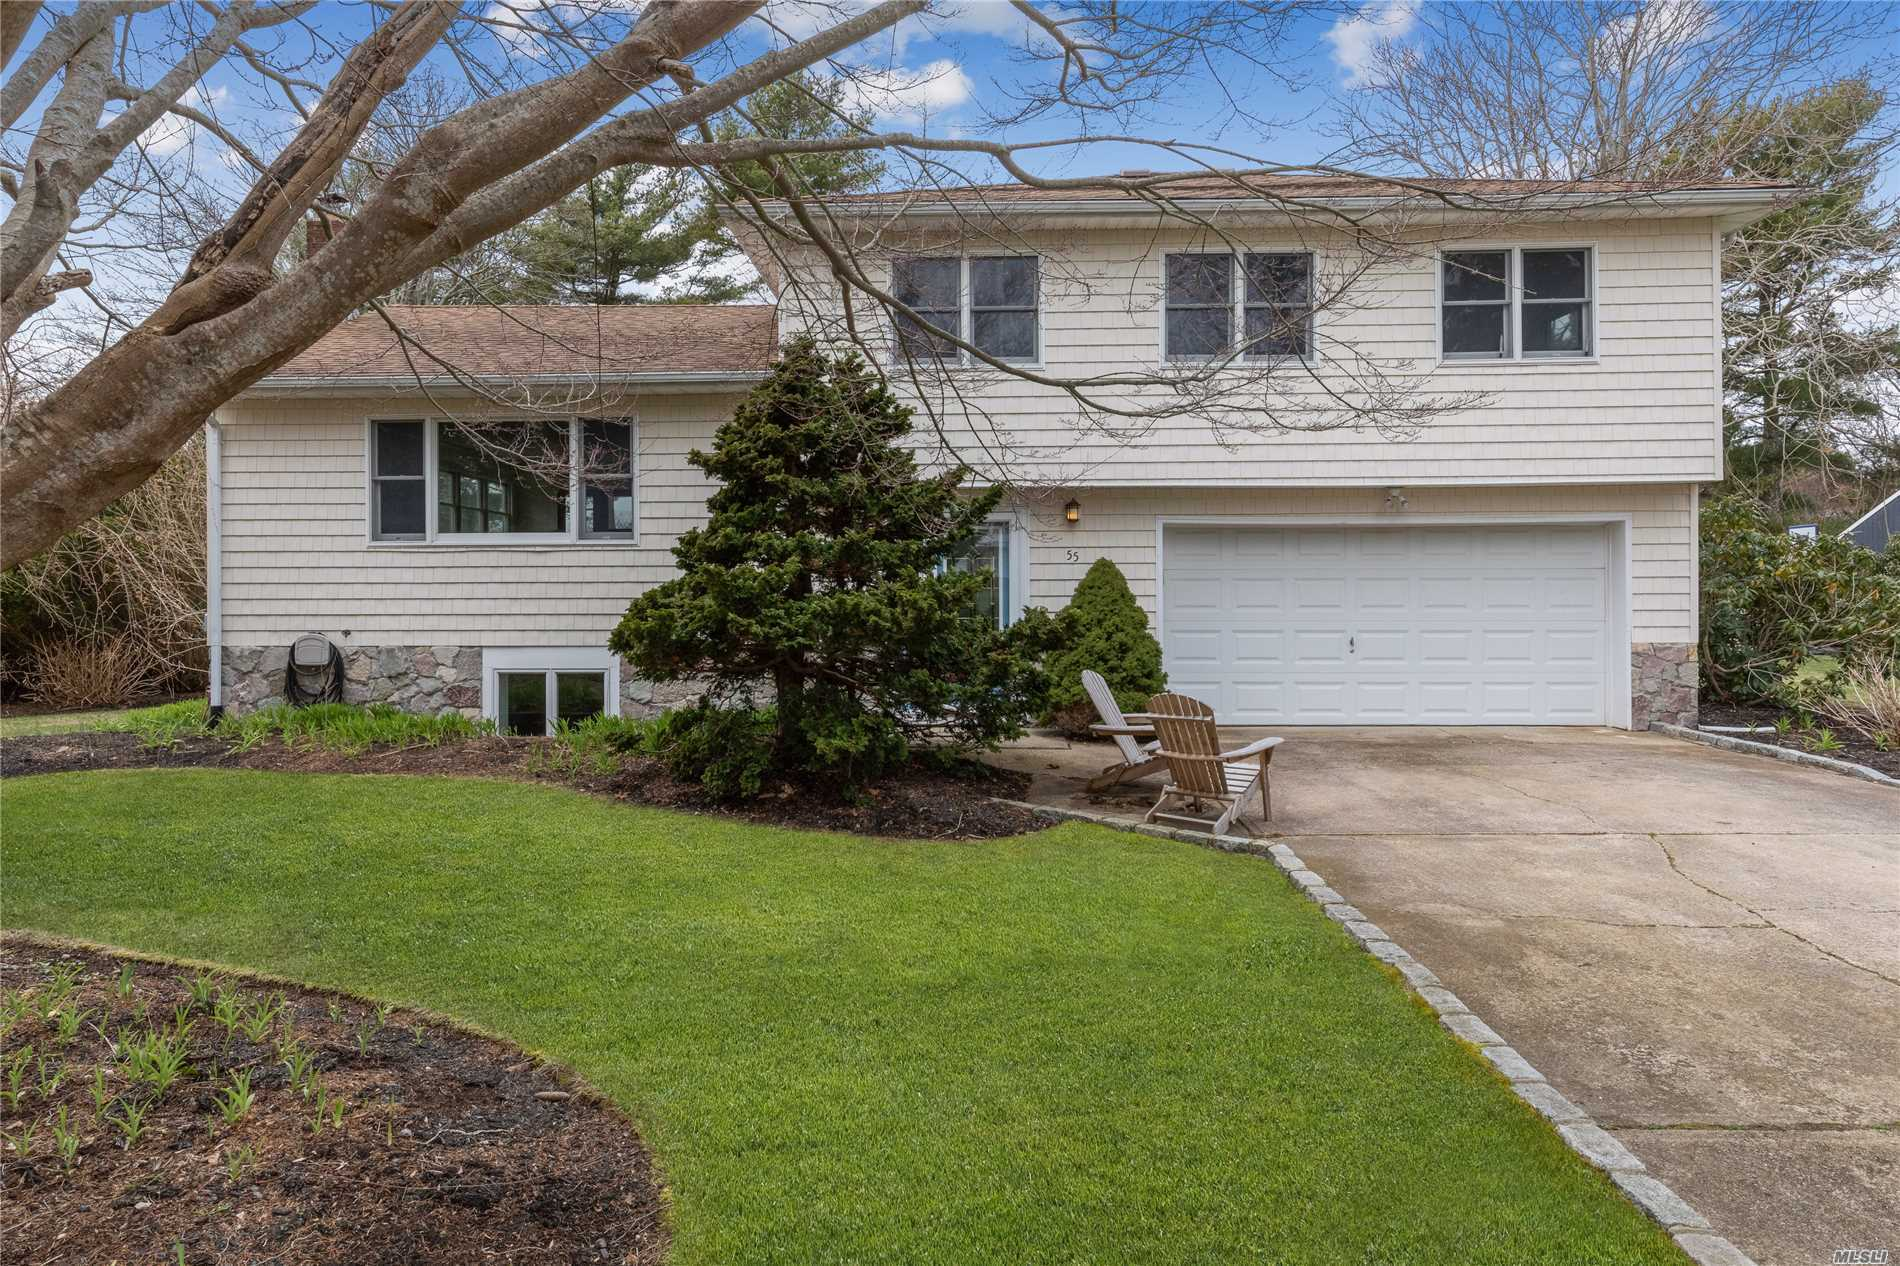 55 Shepard Dr - Southold, New York